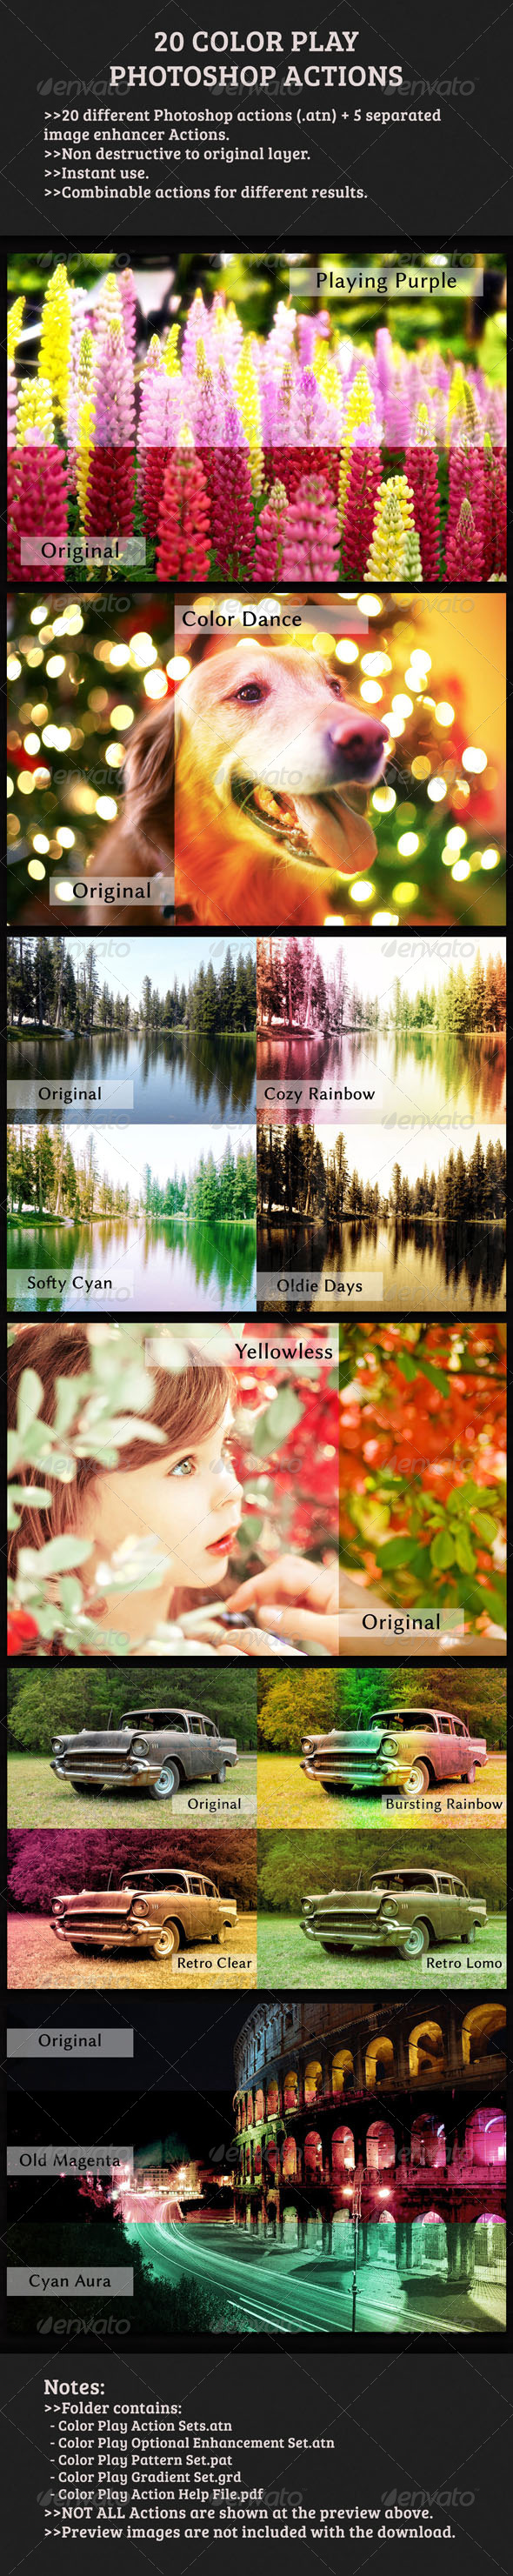 GraphicRiver 20 Color Play Photoshop Actions 4492771